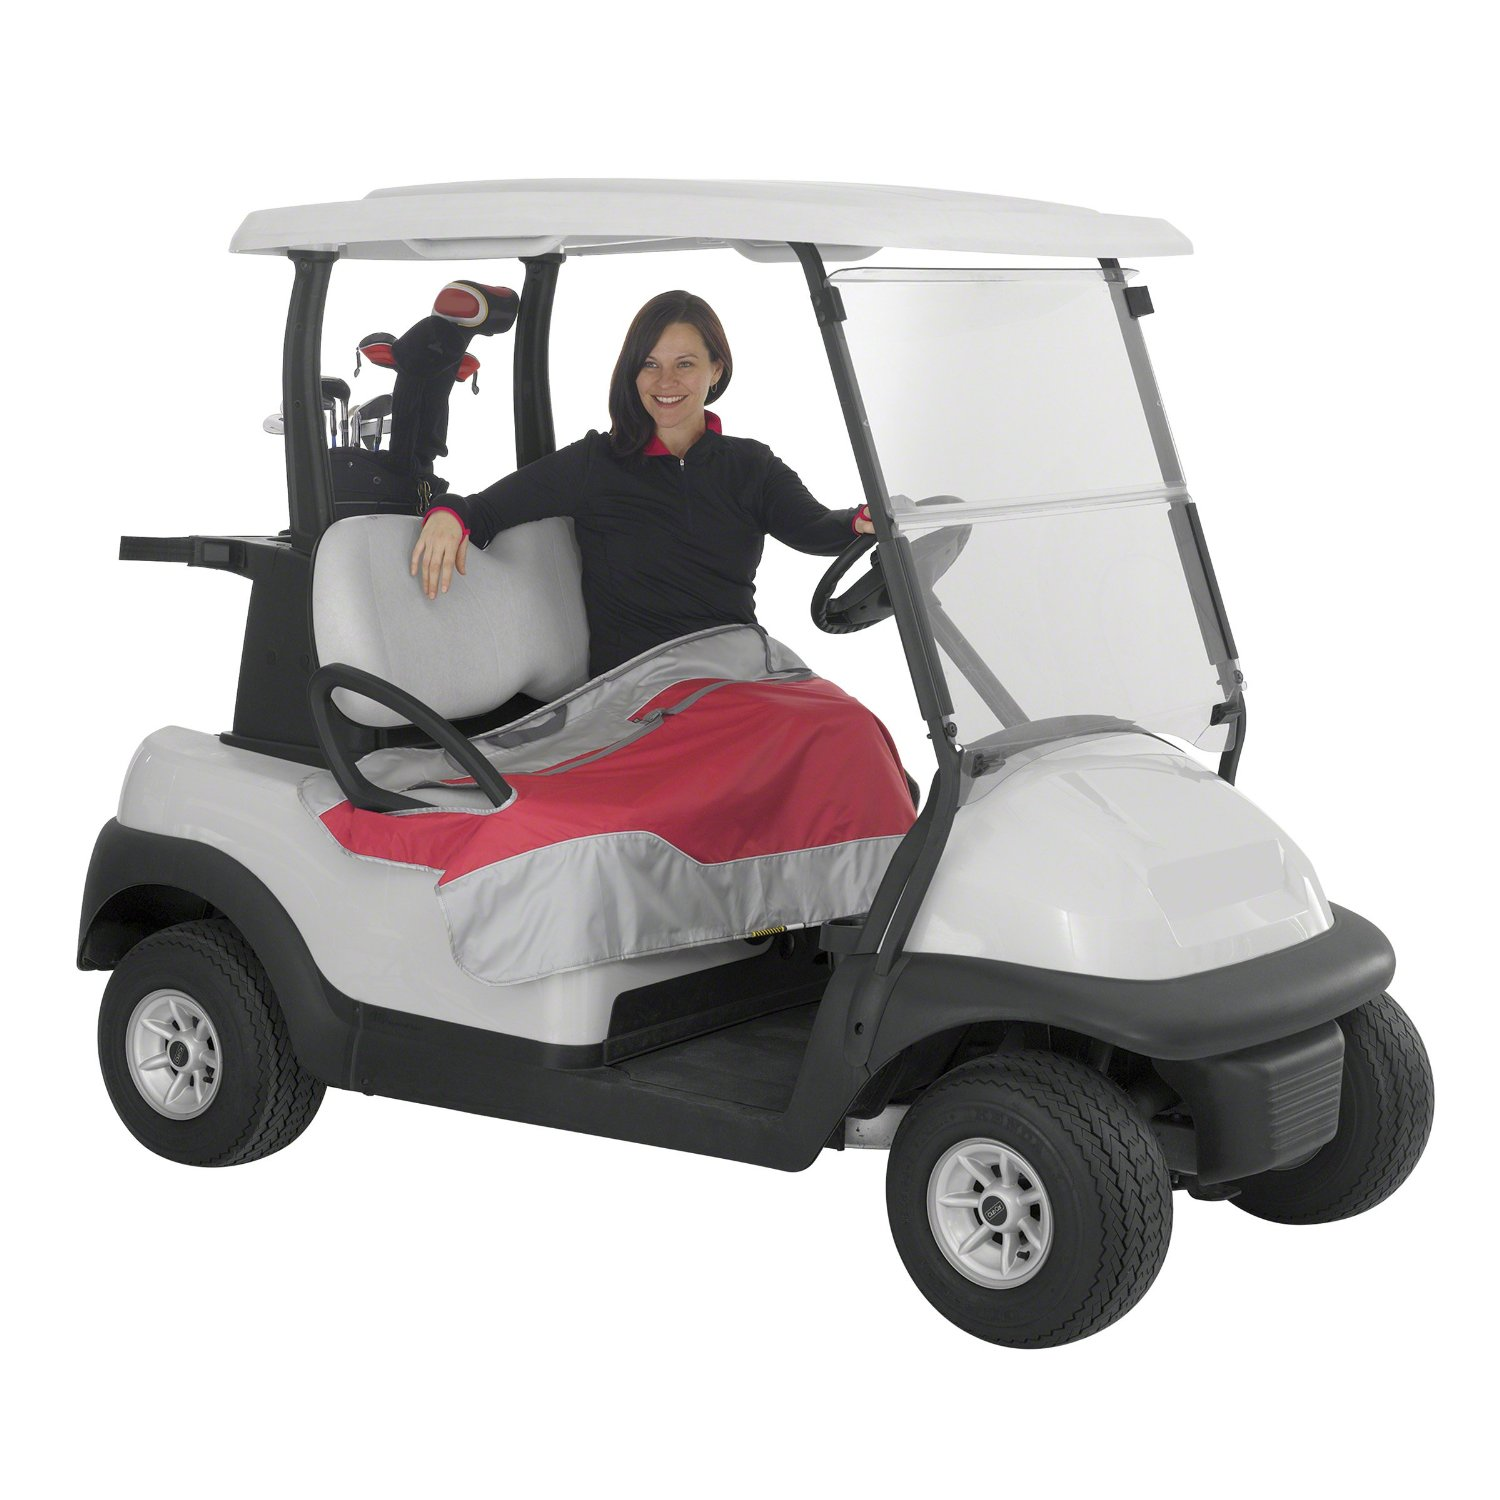 Portable fleece bottomPortable fleece bottomblanketto easily cover yourPortable fleece bottomPortable fleece bottomblanketto easily cover yourgolf cart's seaton anyPortable fleece bottomPortable fleece bottomblanketto easily cover yourPortable fleece bottomPortable fleece bottomblanketto easily cover yourgolf cart's seaton anycartat any course. The water-resistantPortable fleece bottomPortable fleece bottomblanketto easily cover yourPortable fleece bottomPortable fleece bottomblanketto easily cover yourgolf cart's seaton anyPortable fleece bottomPortable fleece bottomblanketto easily cover yourPortable fleece bottomPortable fleece bottomblanketto easily cover yourgolf cart's seaton anycartat any course. The water-resistantblanketsecures over the arm rests to stay in place.